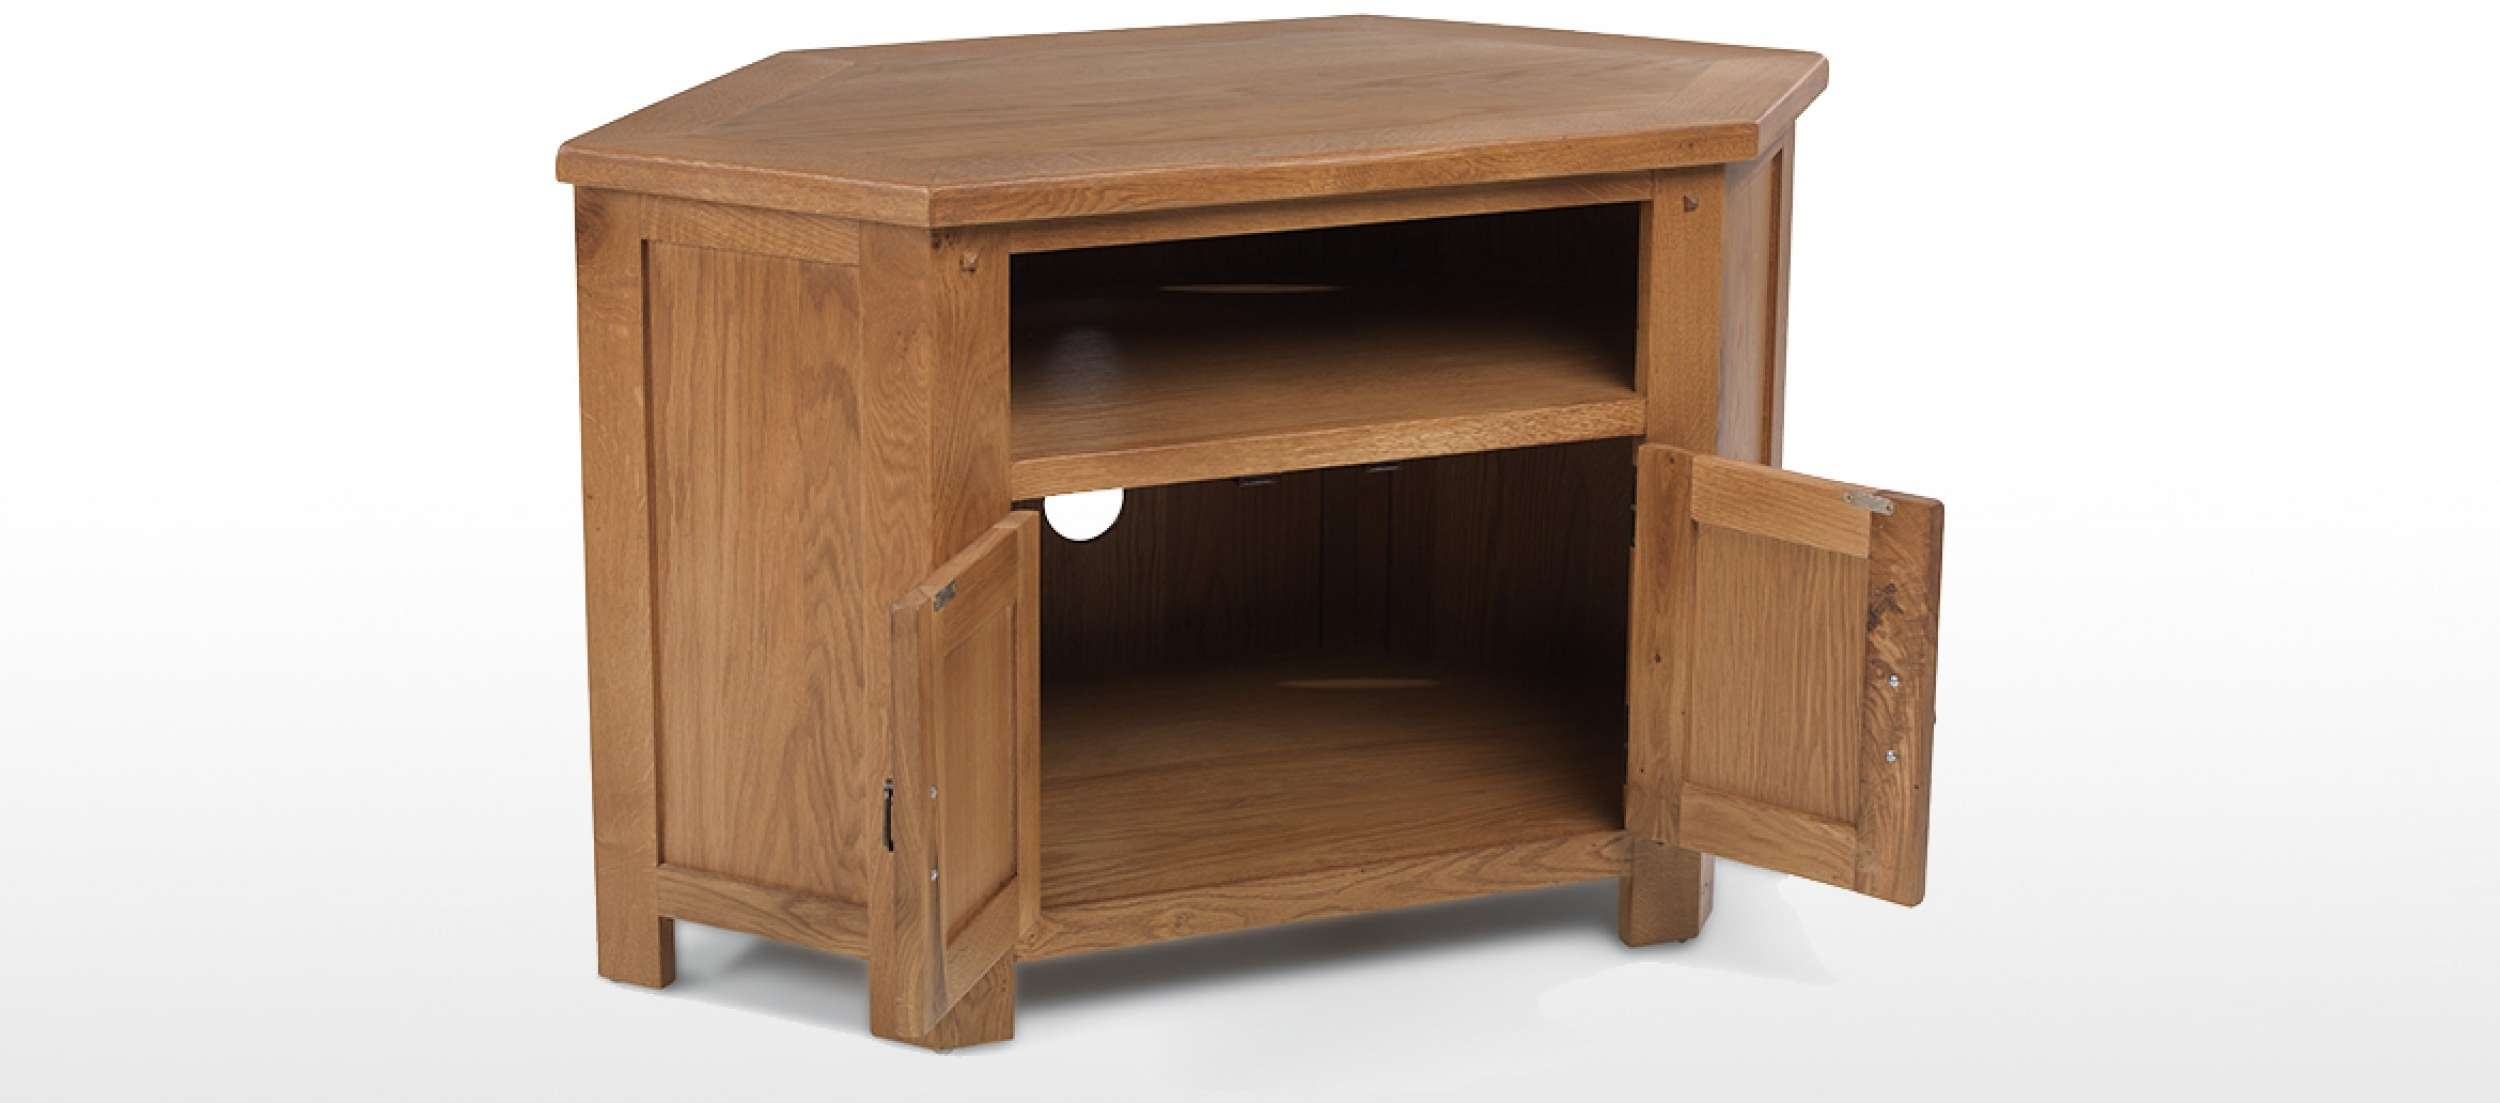 Rustic Oak Corner Tv Cabinet | Quercus Living Throughout Rustic Wood Tv Cabinets (View 12 of 20)